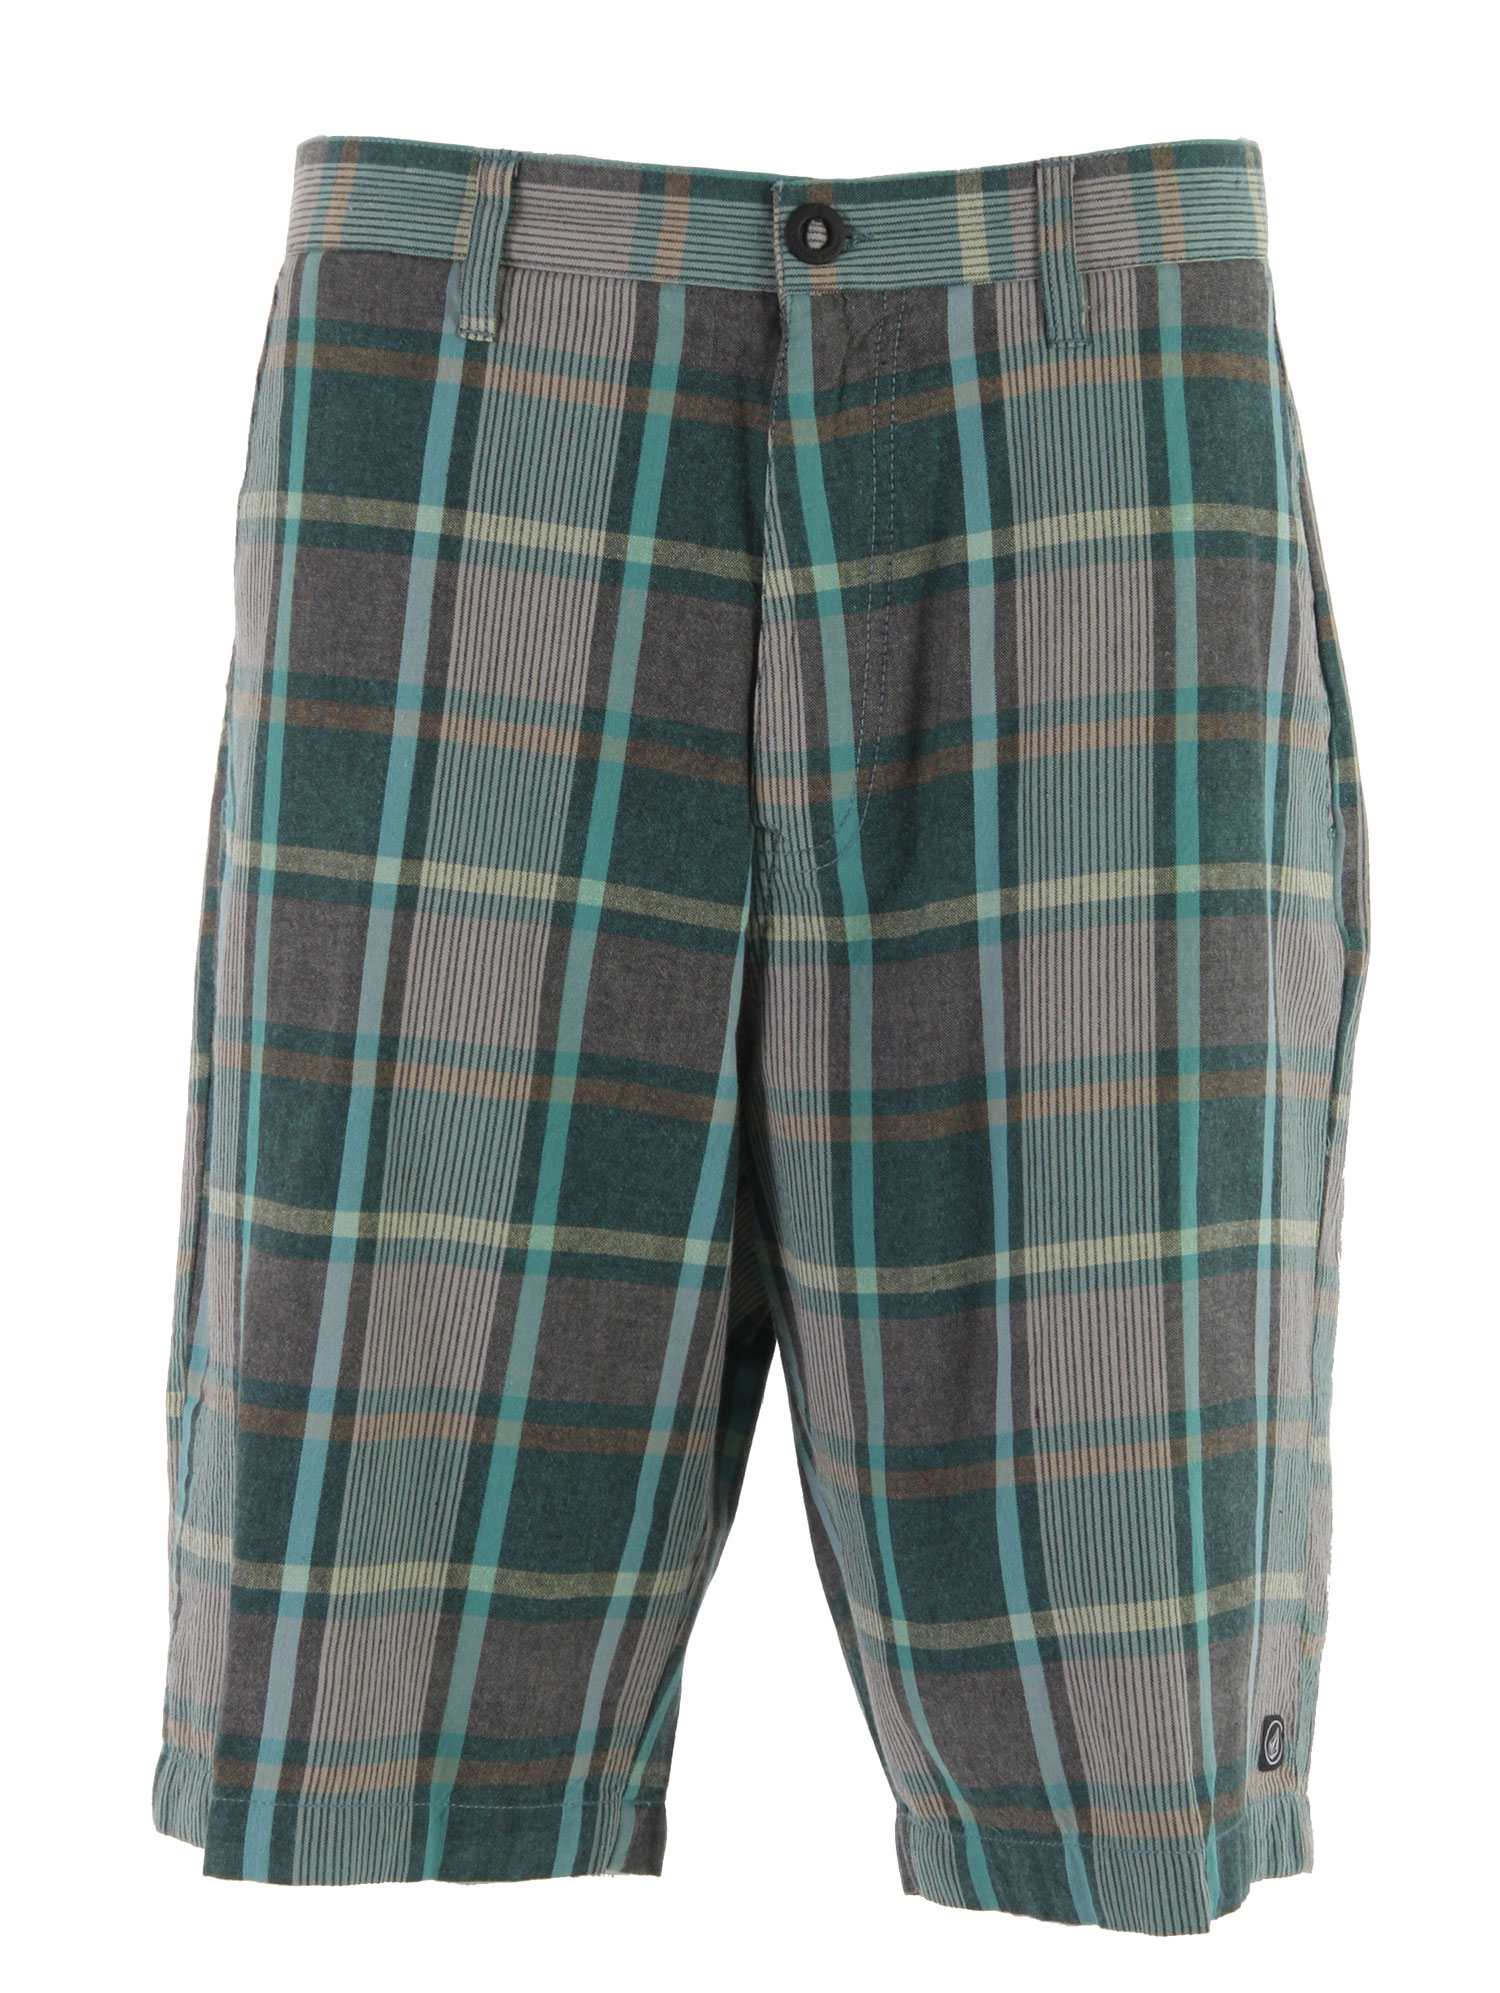 "Surf These Hallway Shorts by Volcom are 100% cotton relaxed fit shorts that have an edgy casual styling that gives them a ton of versatility. The multi-plaid chino material catches the eye in a crowd and include side buttons for a unique look. Shorts are fully machine washable with a long outseam. If you're looking for a pair of relaxed fit Hallway skate shorts to complete your set of gear, nothing matches Volcoms comfort and ability to always deliver.Key Features of the Volcom Hallway Shorts: 22"" Outseam Relaxed fit chino short Garment wash w/ softener 100% Cotton yarn dye - $30.95"